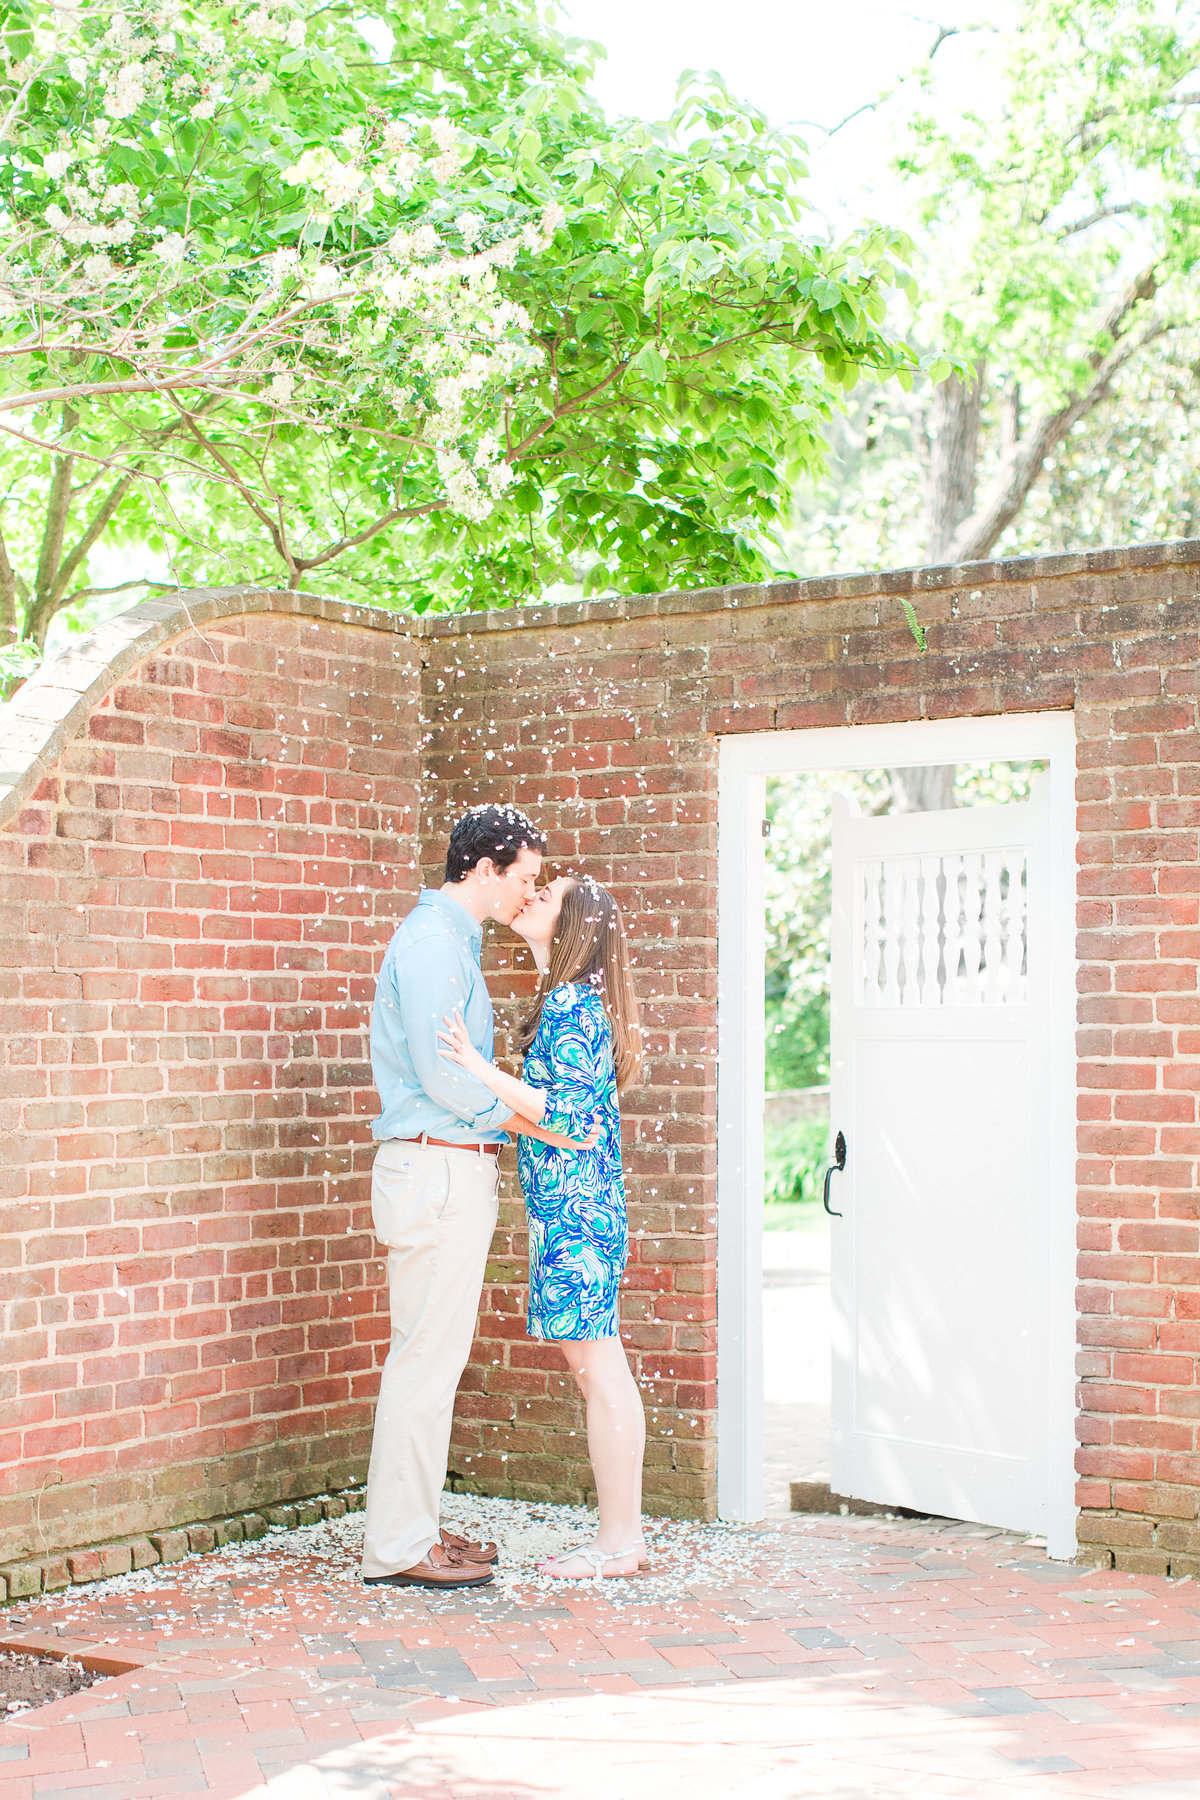 Gregg Ann Engagement Session-Full Engagement Gallery-0063